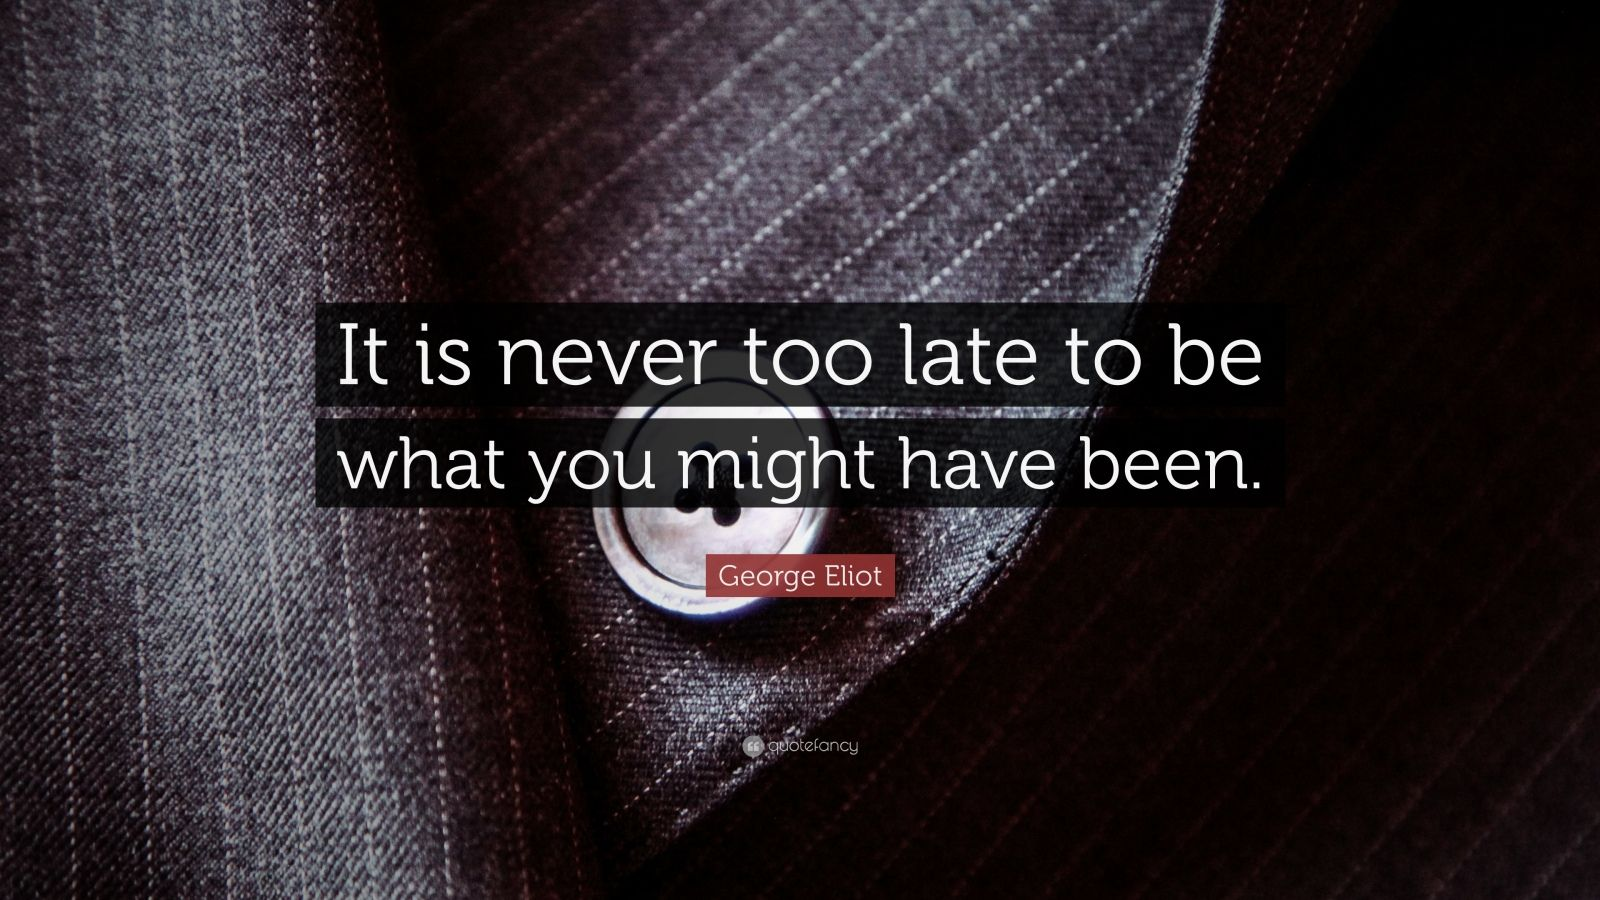 George Eliot Never Too Late to Be What It Is